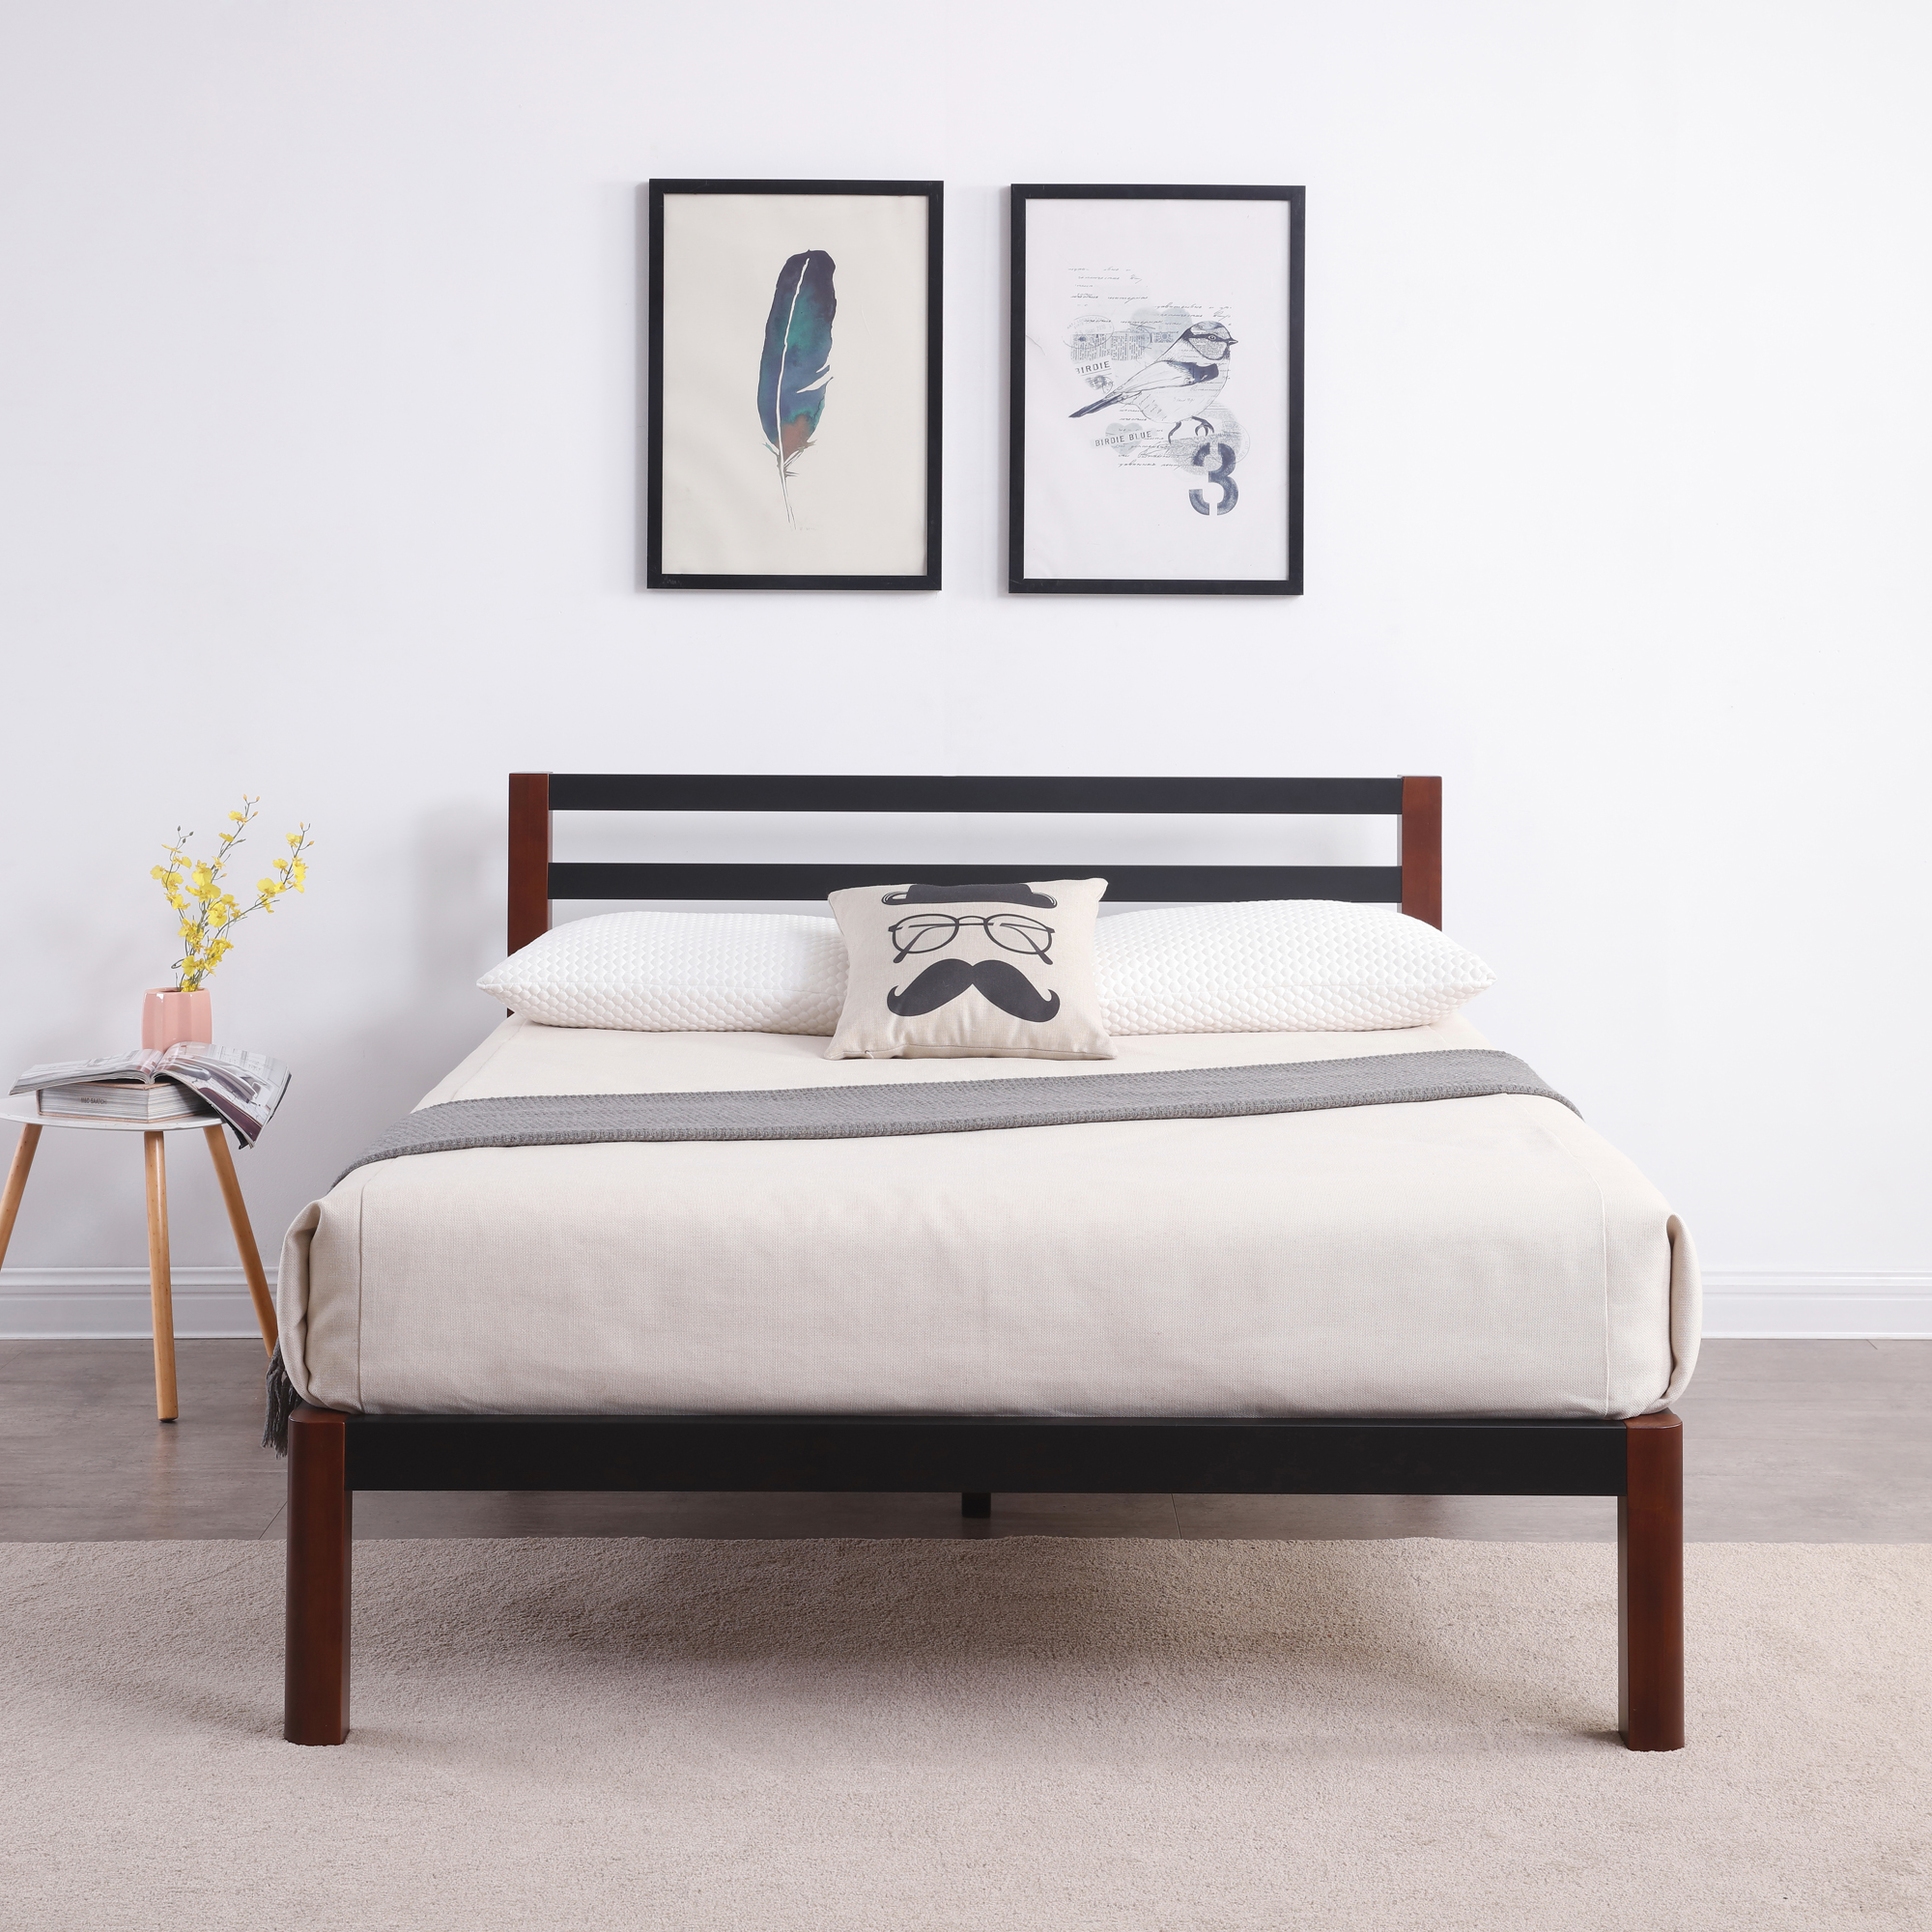 Modern Sleep Tilbury Wood Slat And Metal Platform Bed Frame With Headboard  | Mattress Foundation,